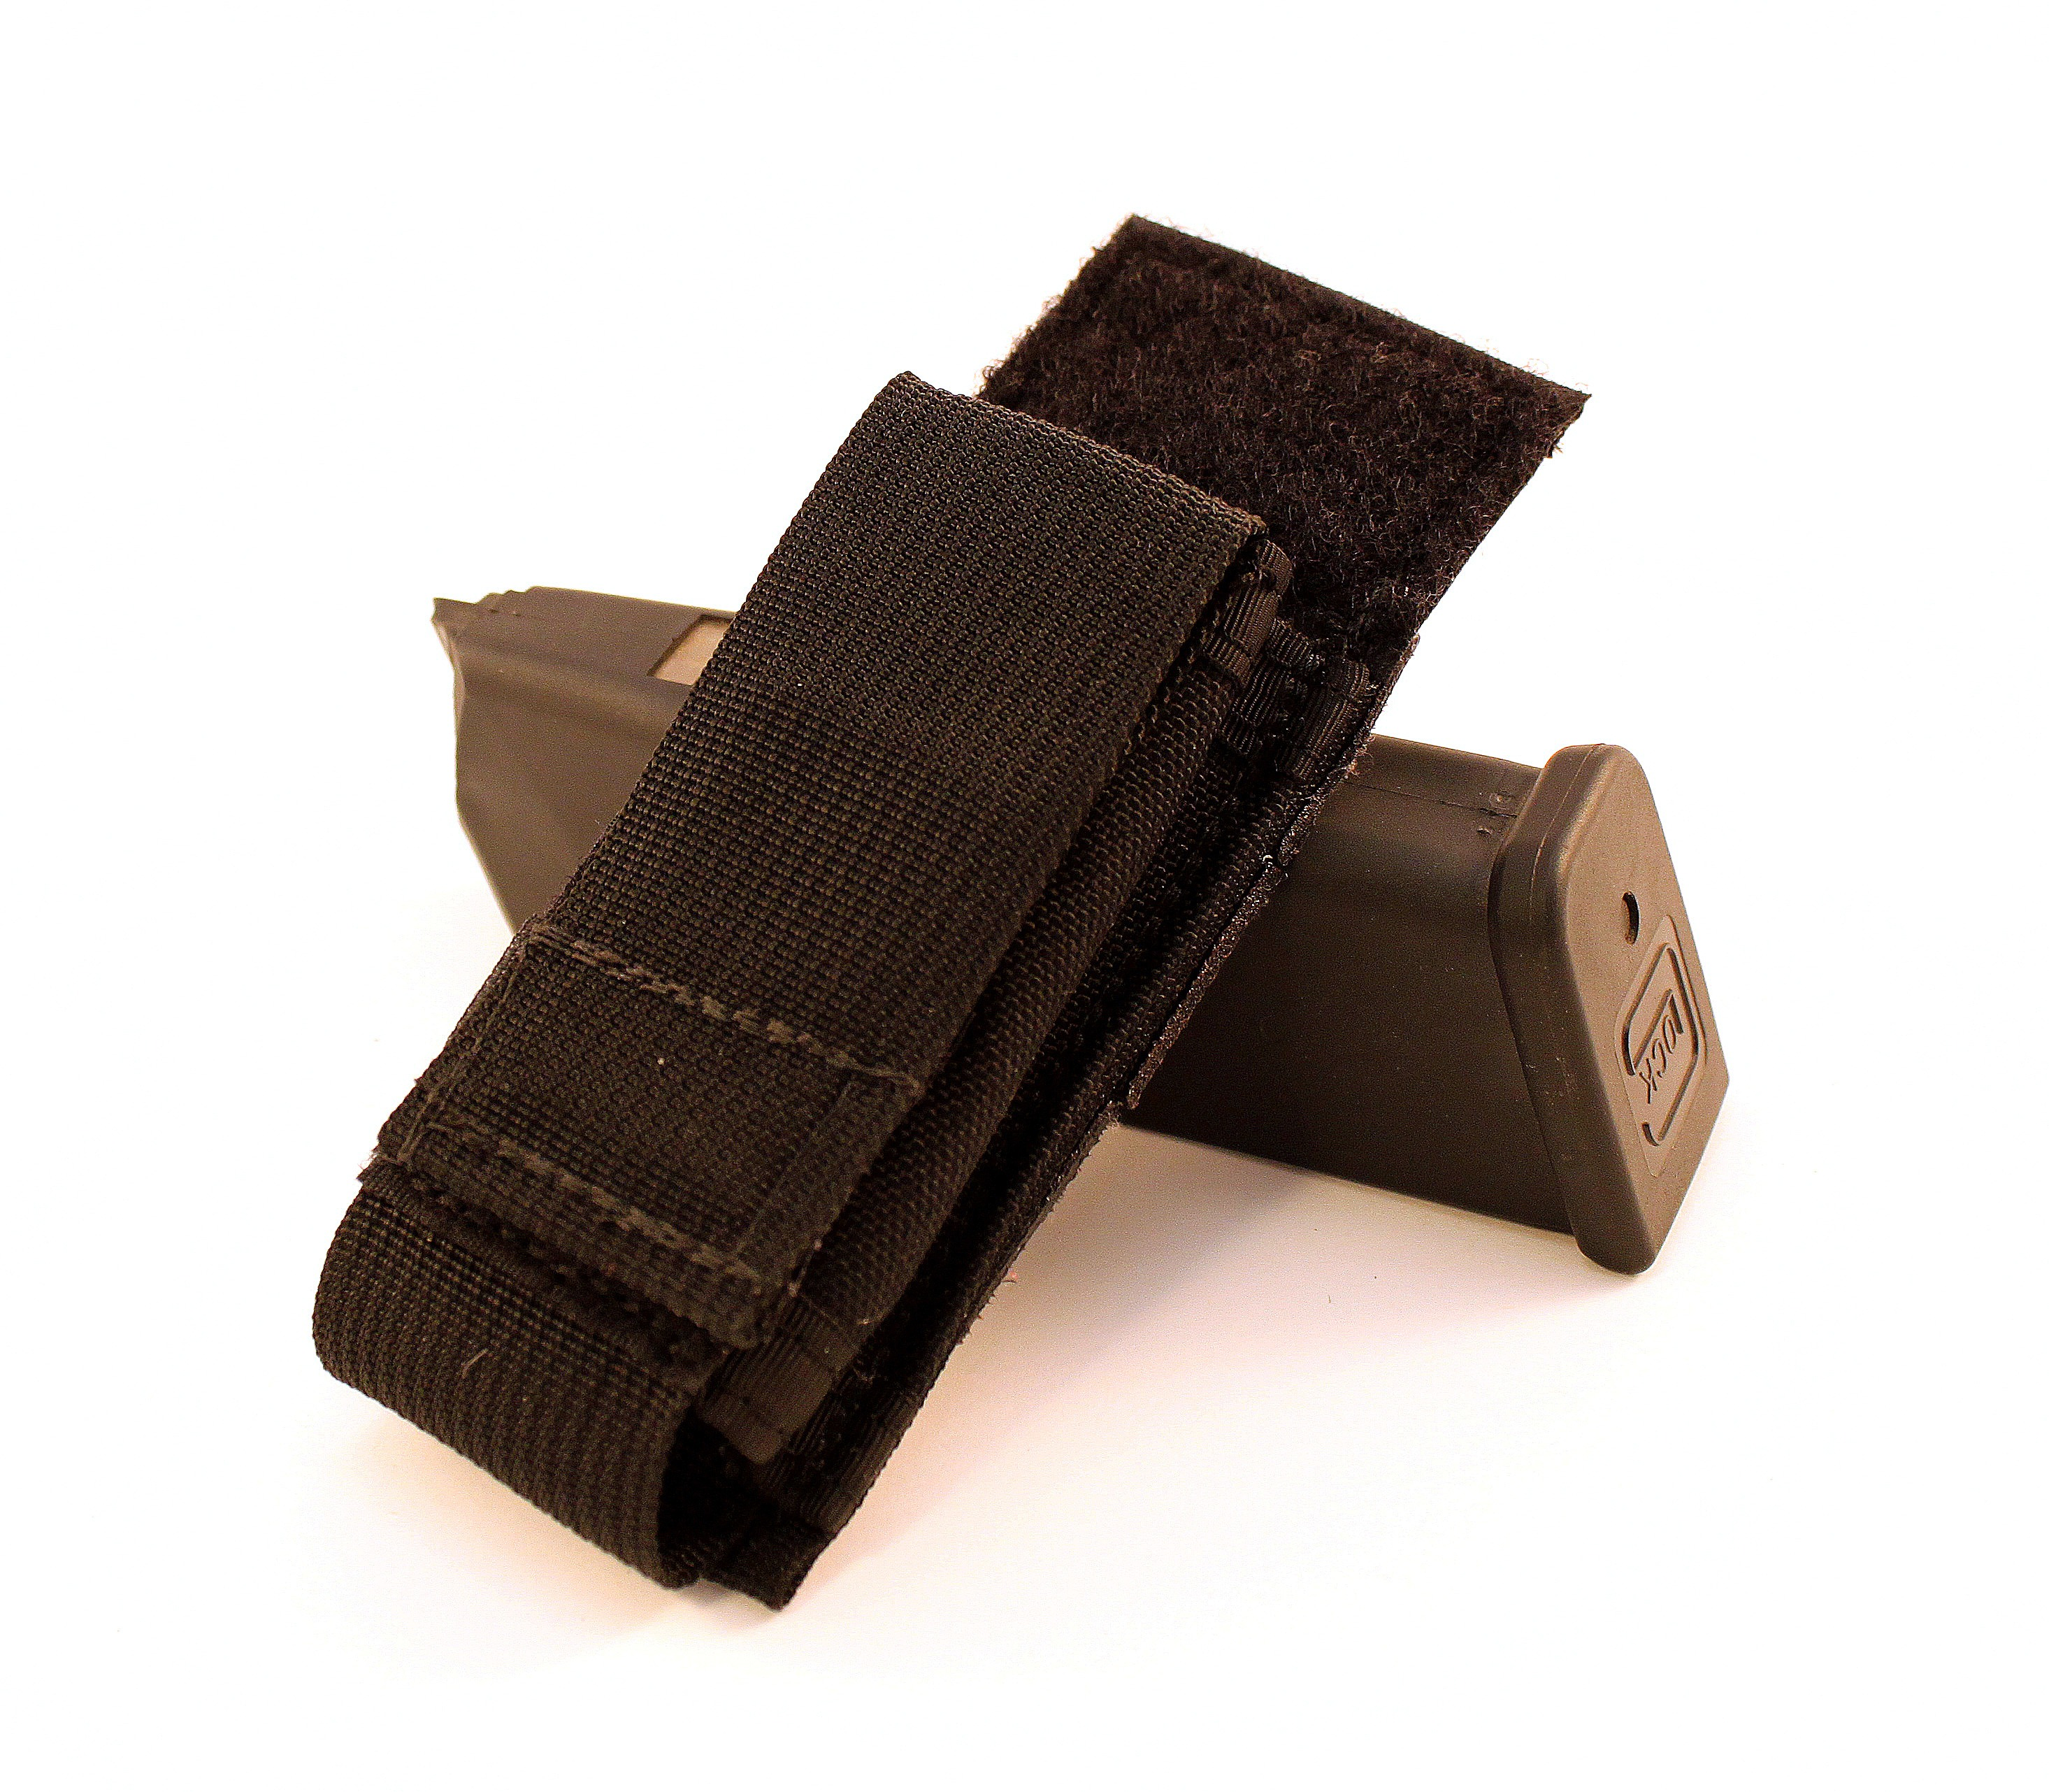 Belts, Pouches and Ammo Carriers